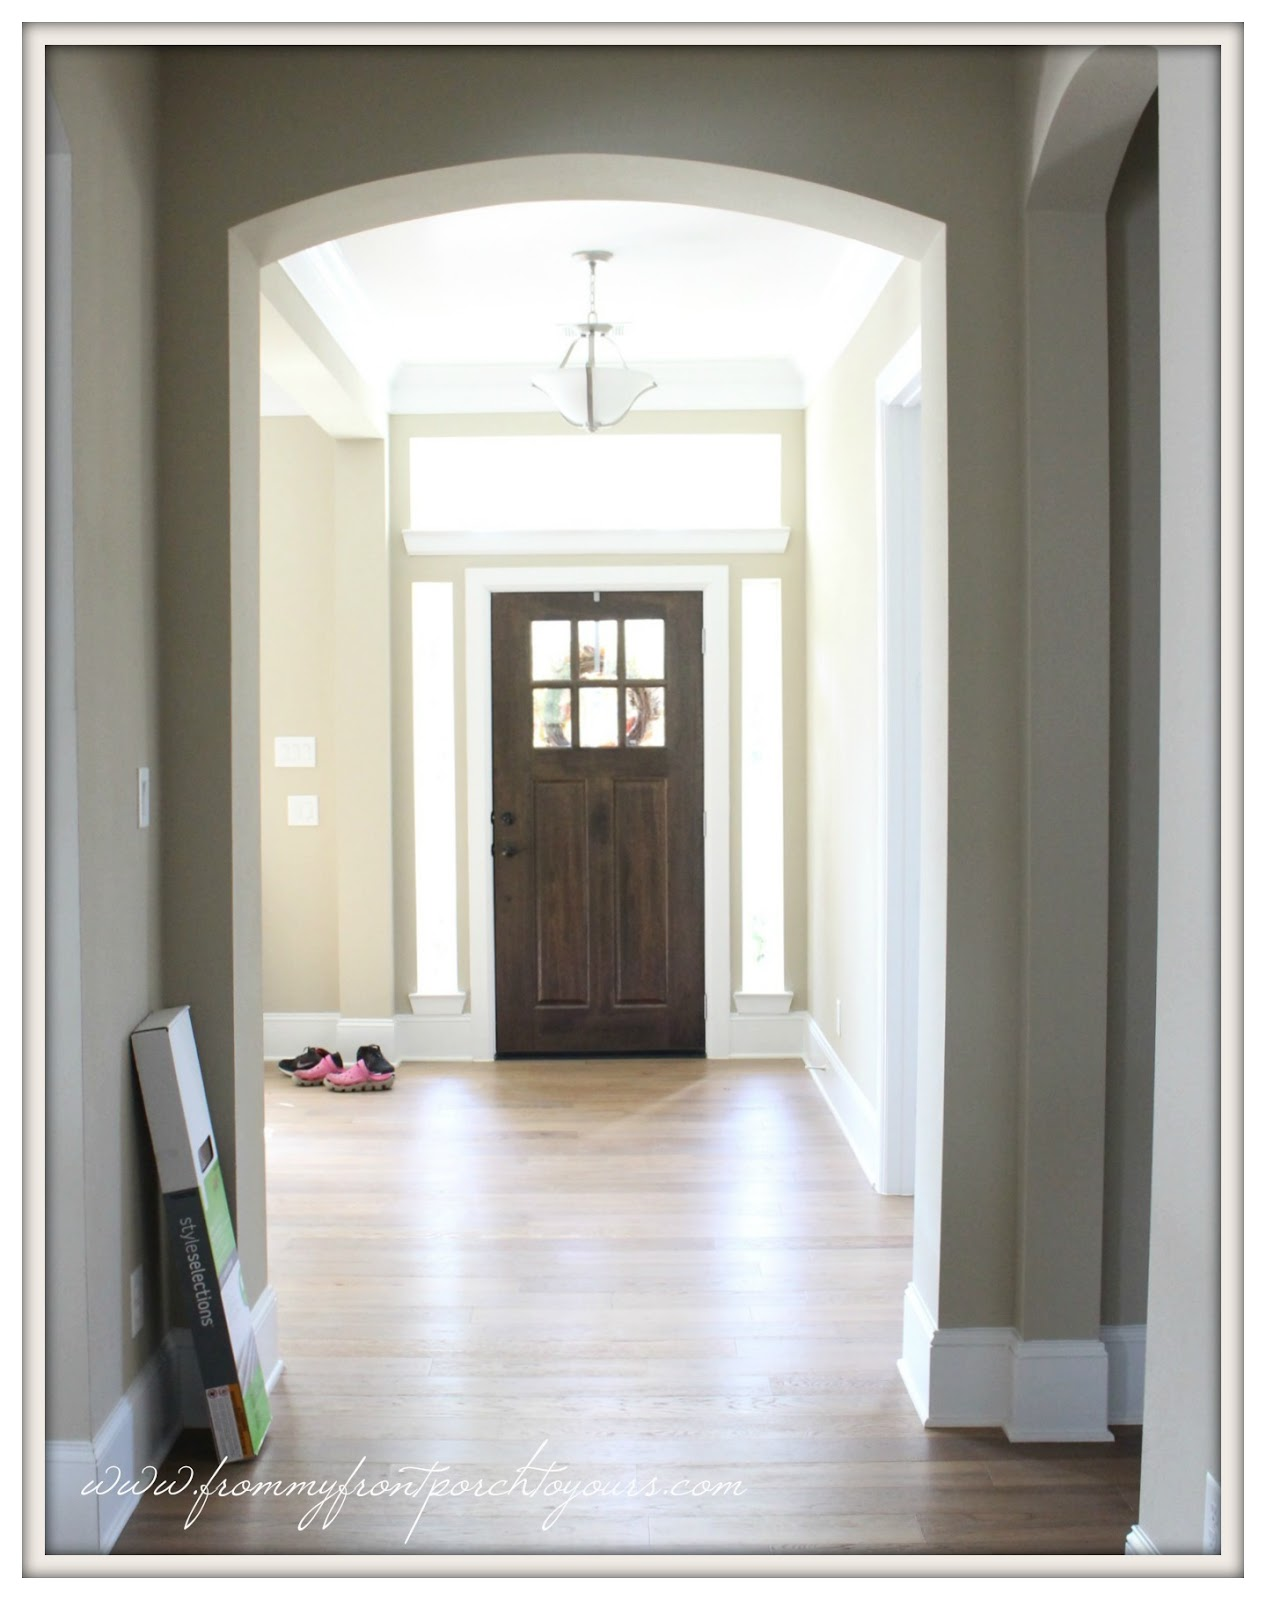 Farmhouse Foyer S : From my front porch to yours farmhouse foyer big plans